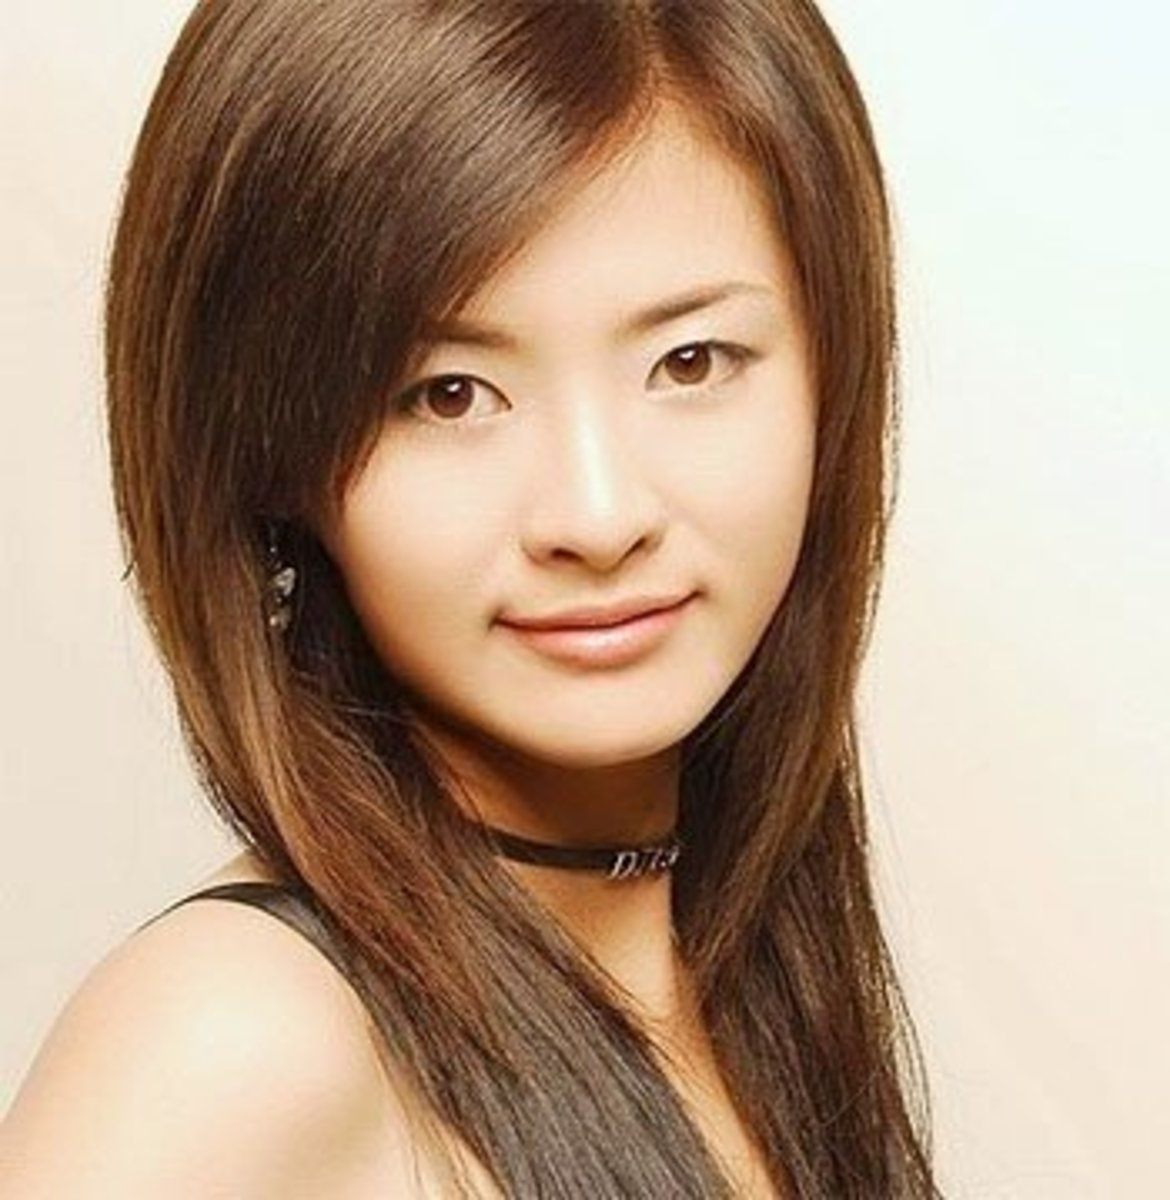 The best hair colors for Asians.